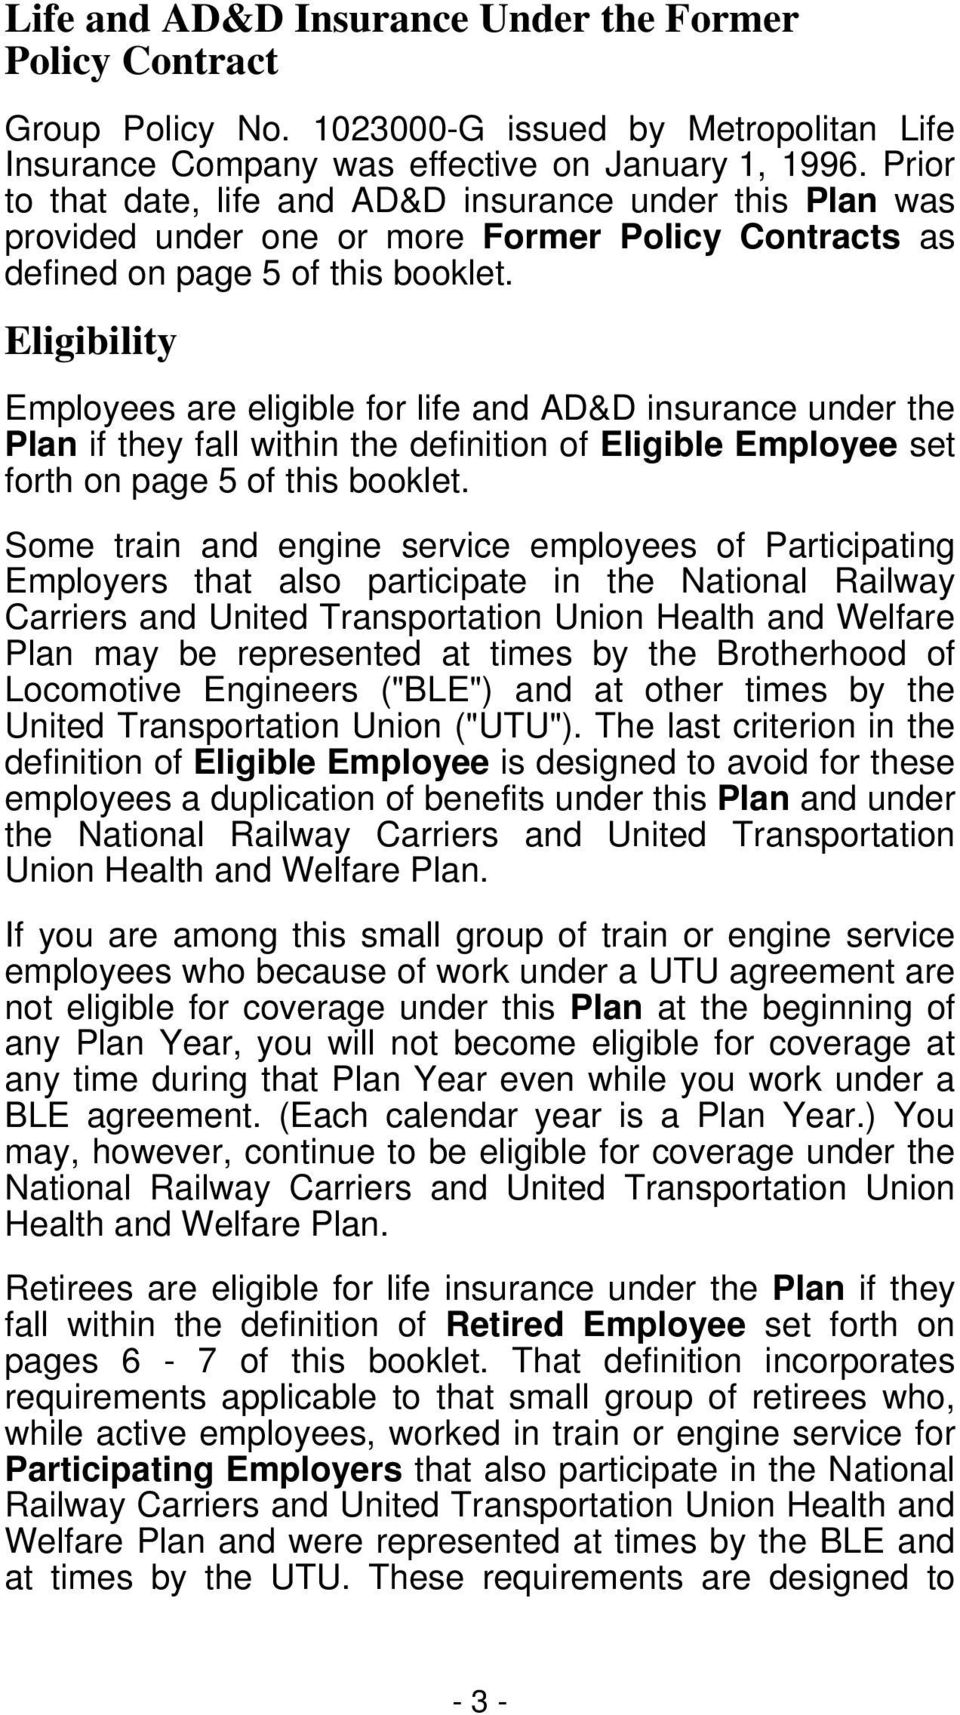 Eligibility Employees are eligible for life and AD&D insurance under the Plan if they fall within the definition of Eligible Employee set forth on page 5 of this booklet.